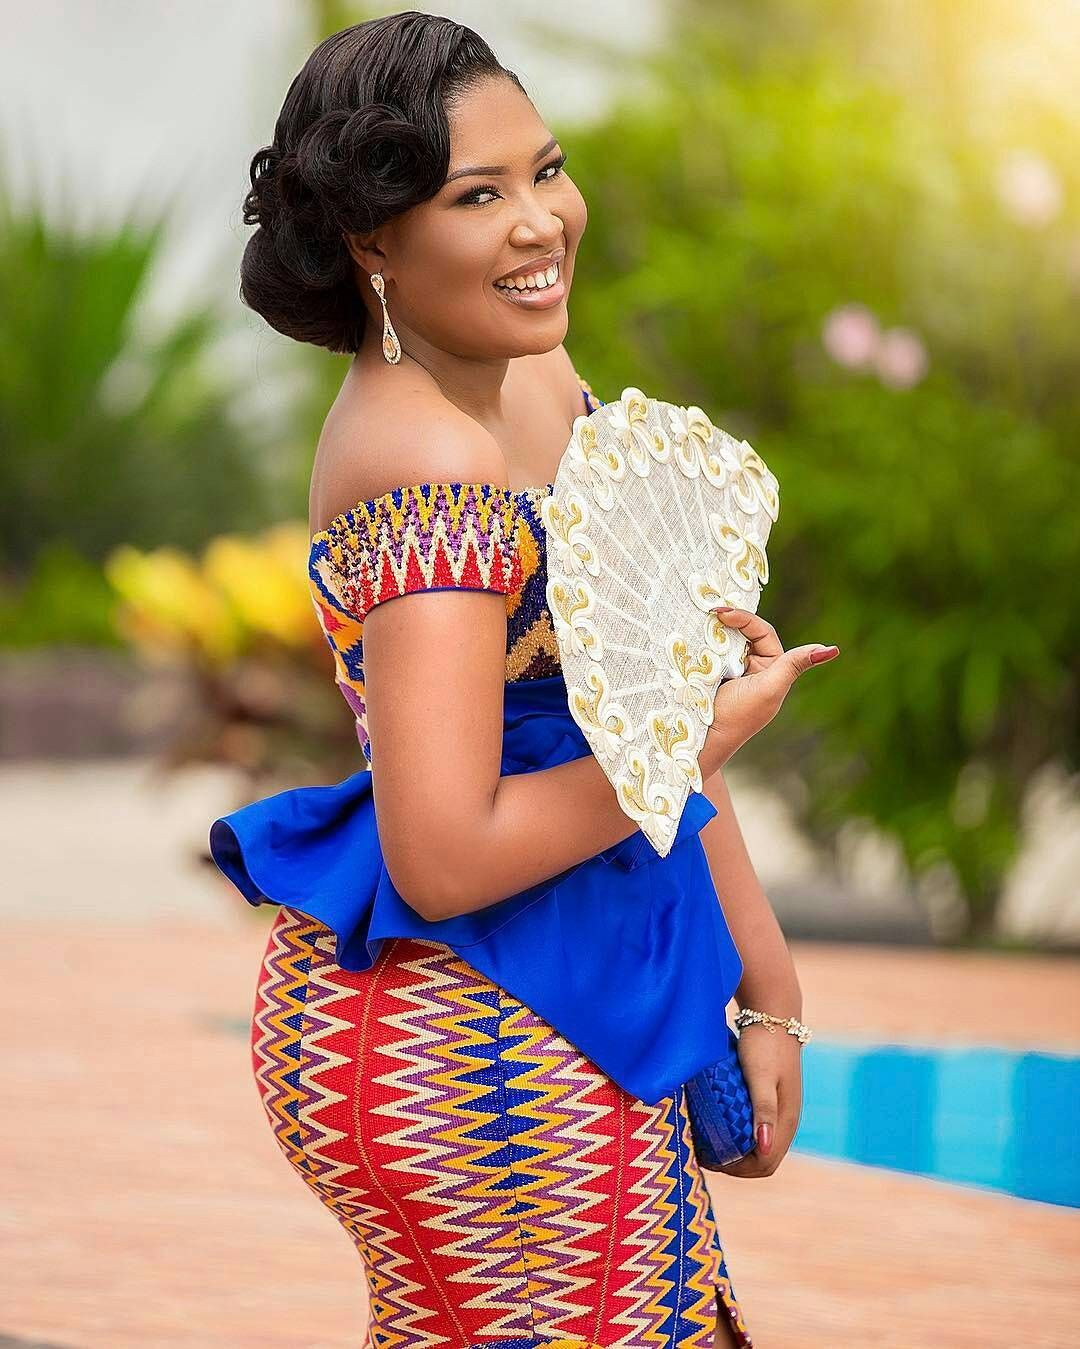 Wedding Hairstyles Ghana: 1,705 Likes, 4 Comments